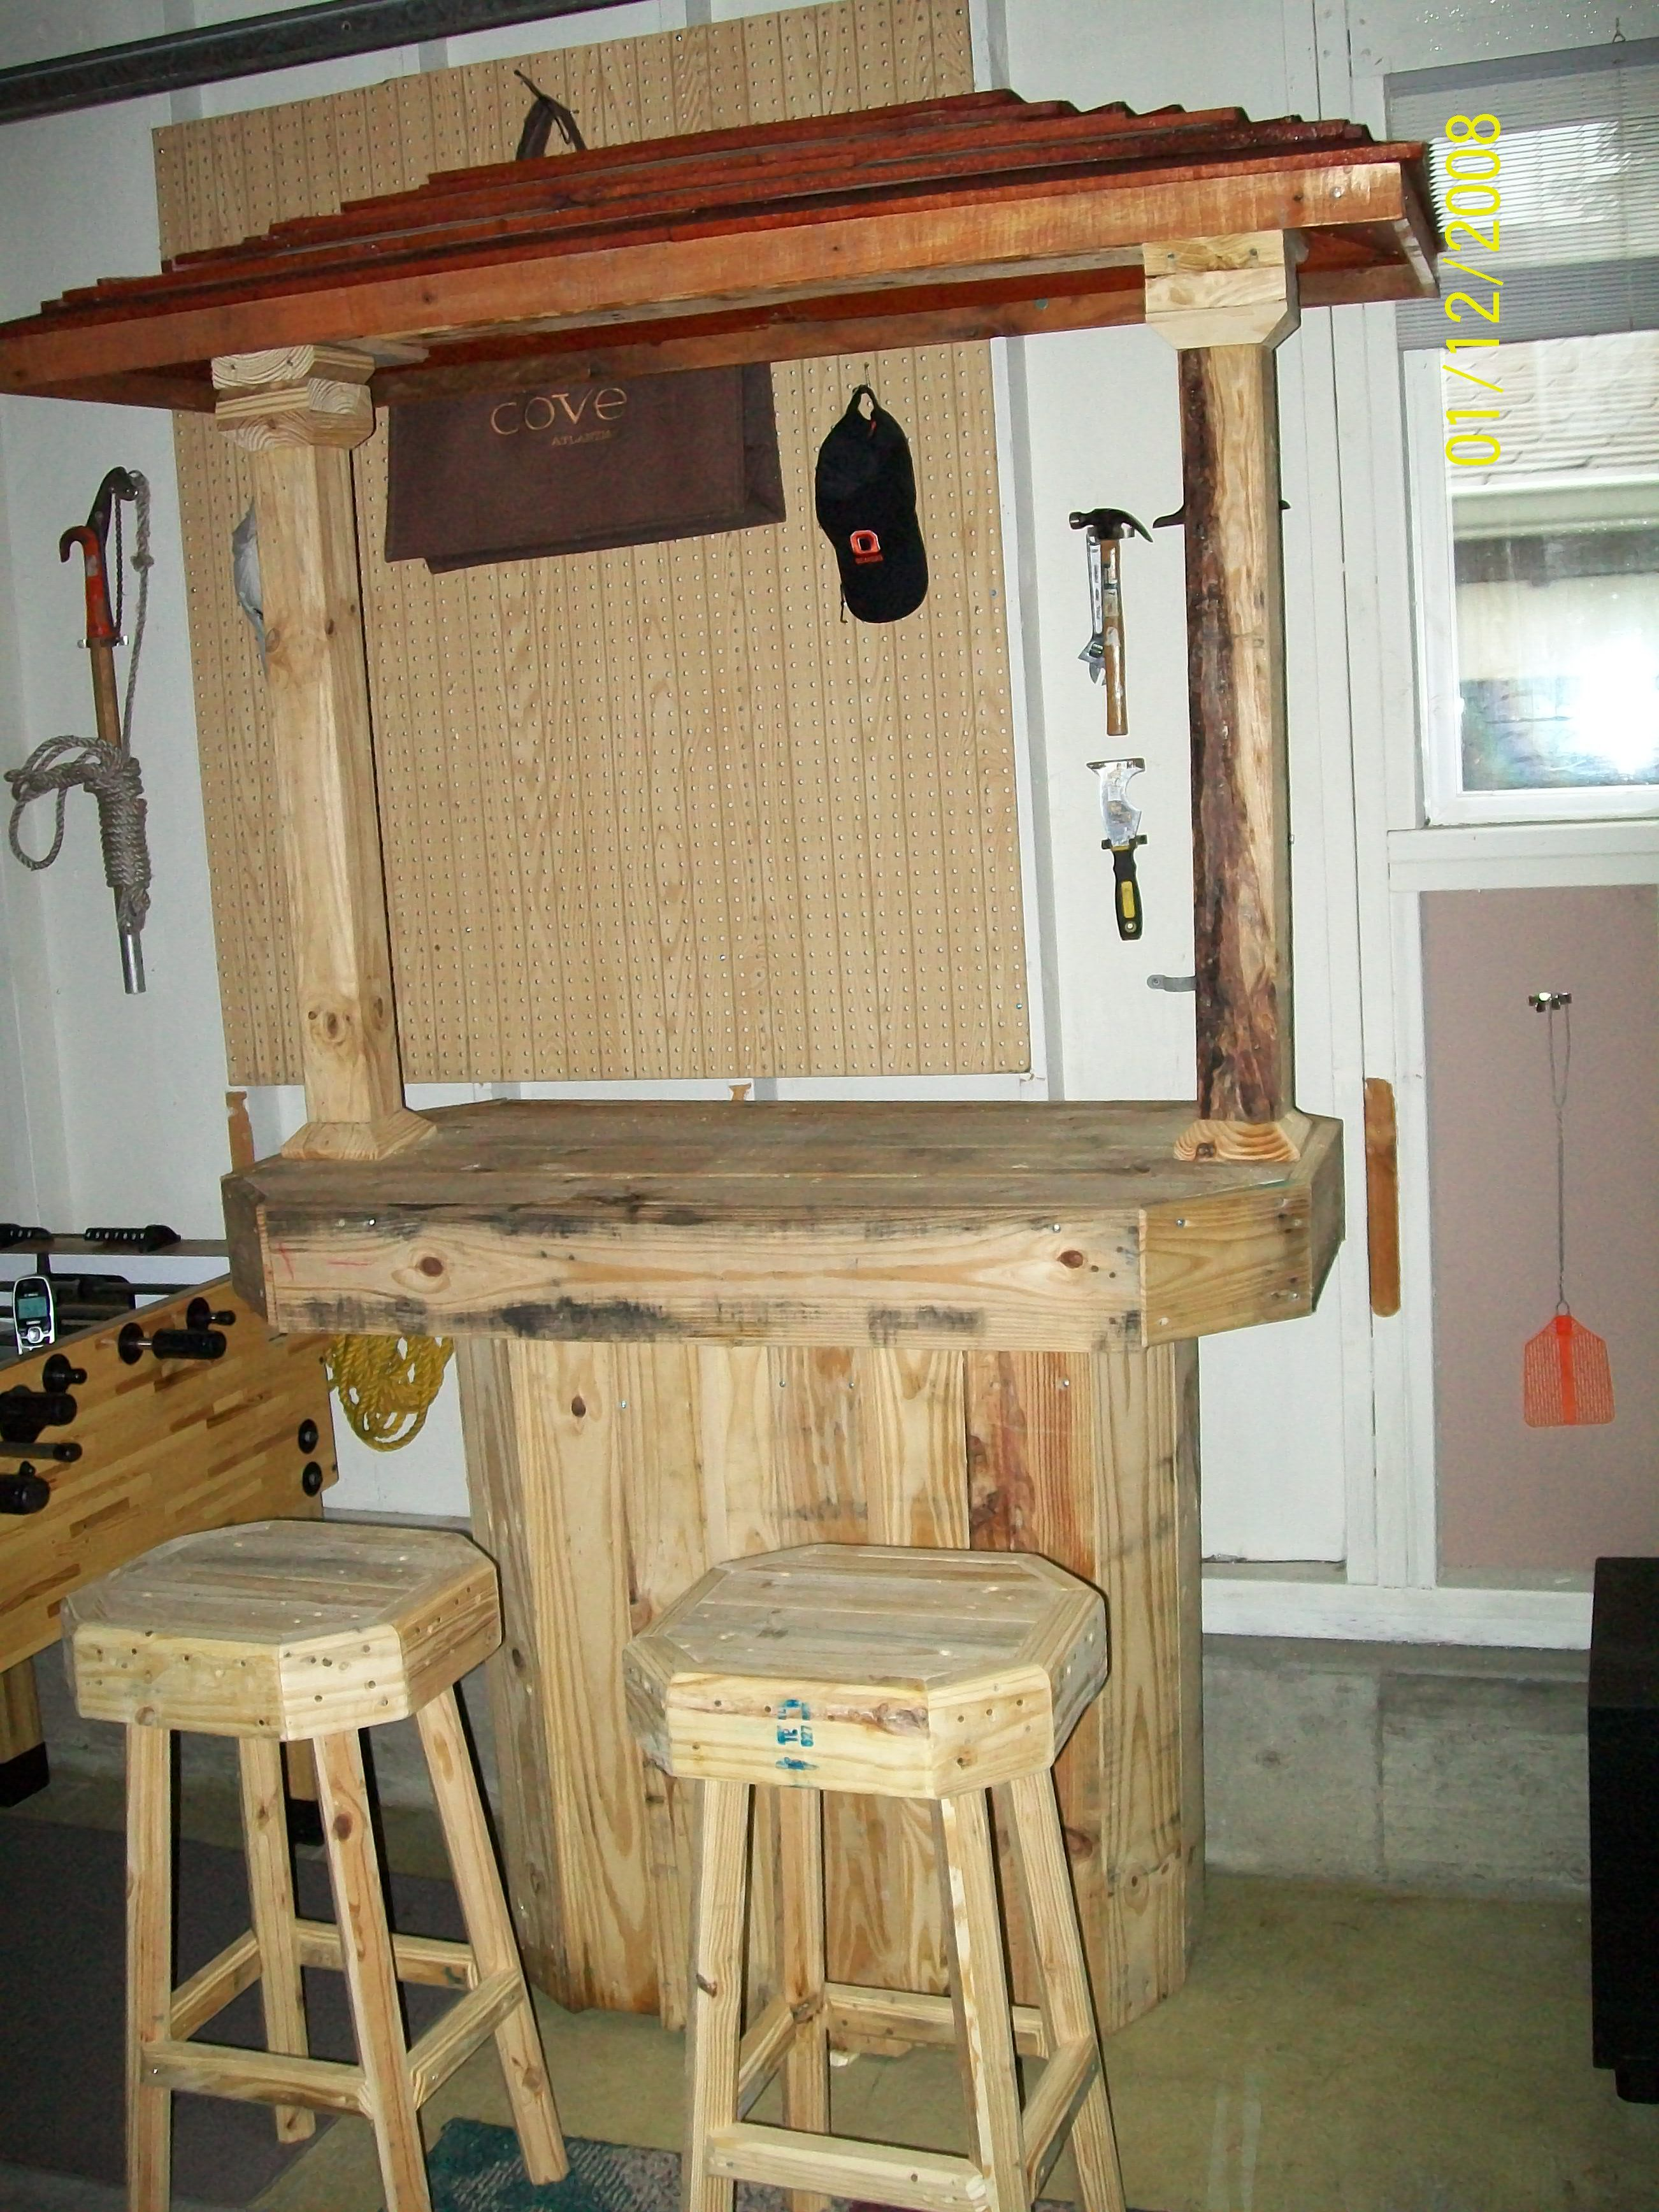 Selbstgebaute Bar Pin By Cynthia !!! On Pallet Furniture Ii | Pallet Bar Stools, Pallet Bar, Wood Pallet Projects